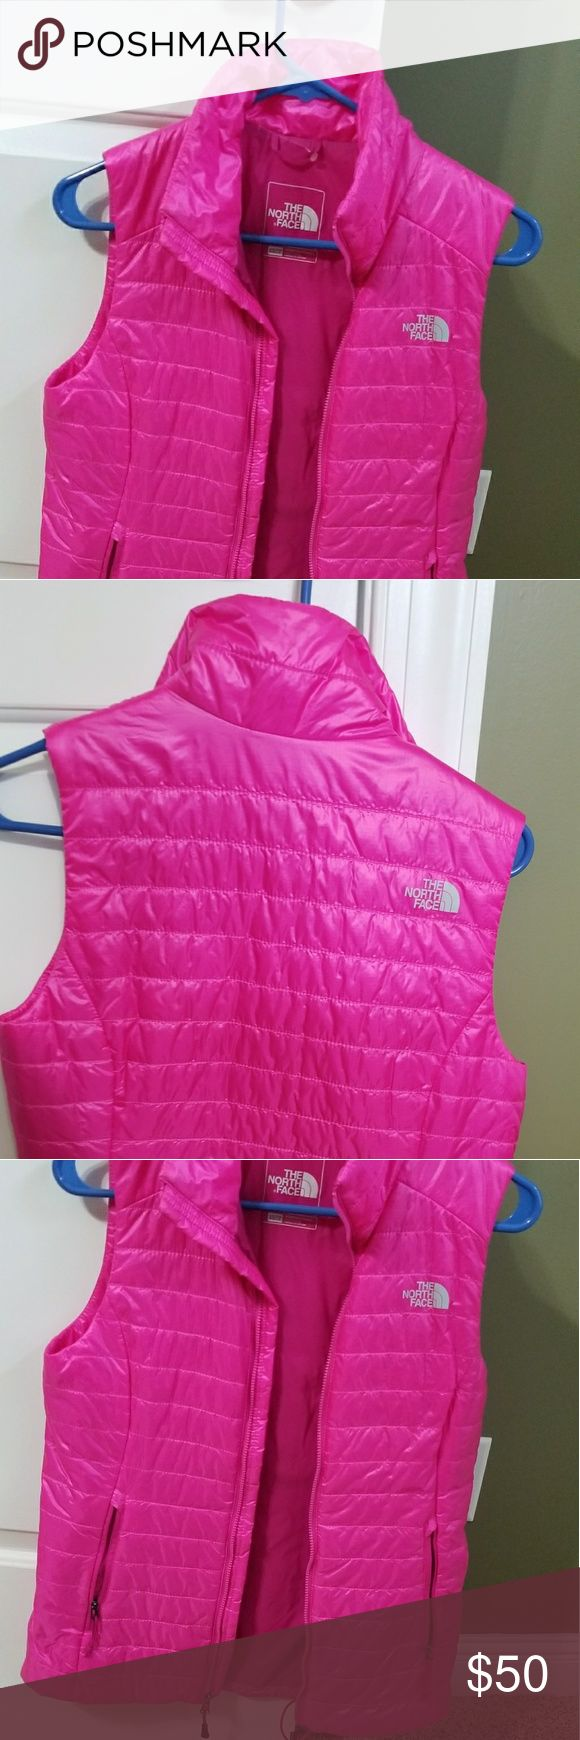 North Face Womens lightweight Vest PINK New without tags (slightly darker pink than pics show) North Face Jackets & Coats Vests